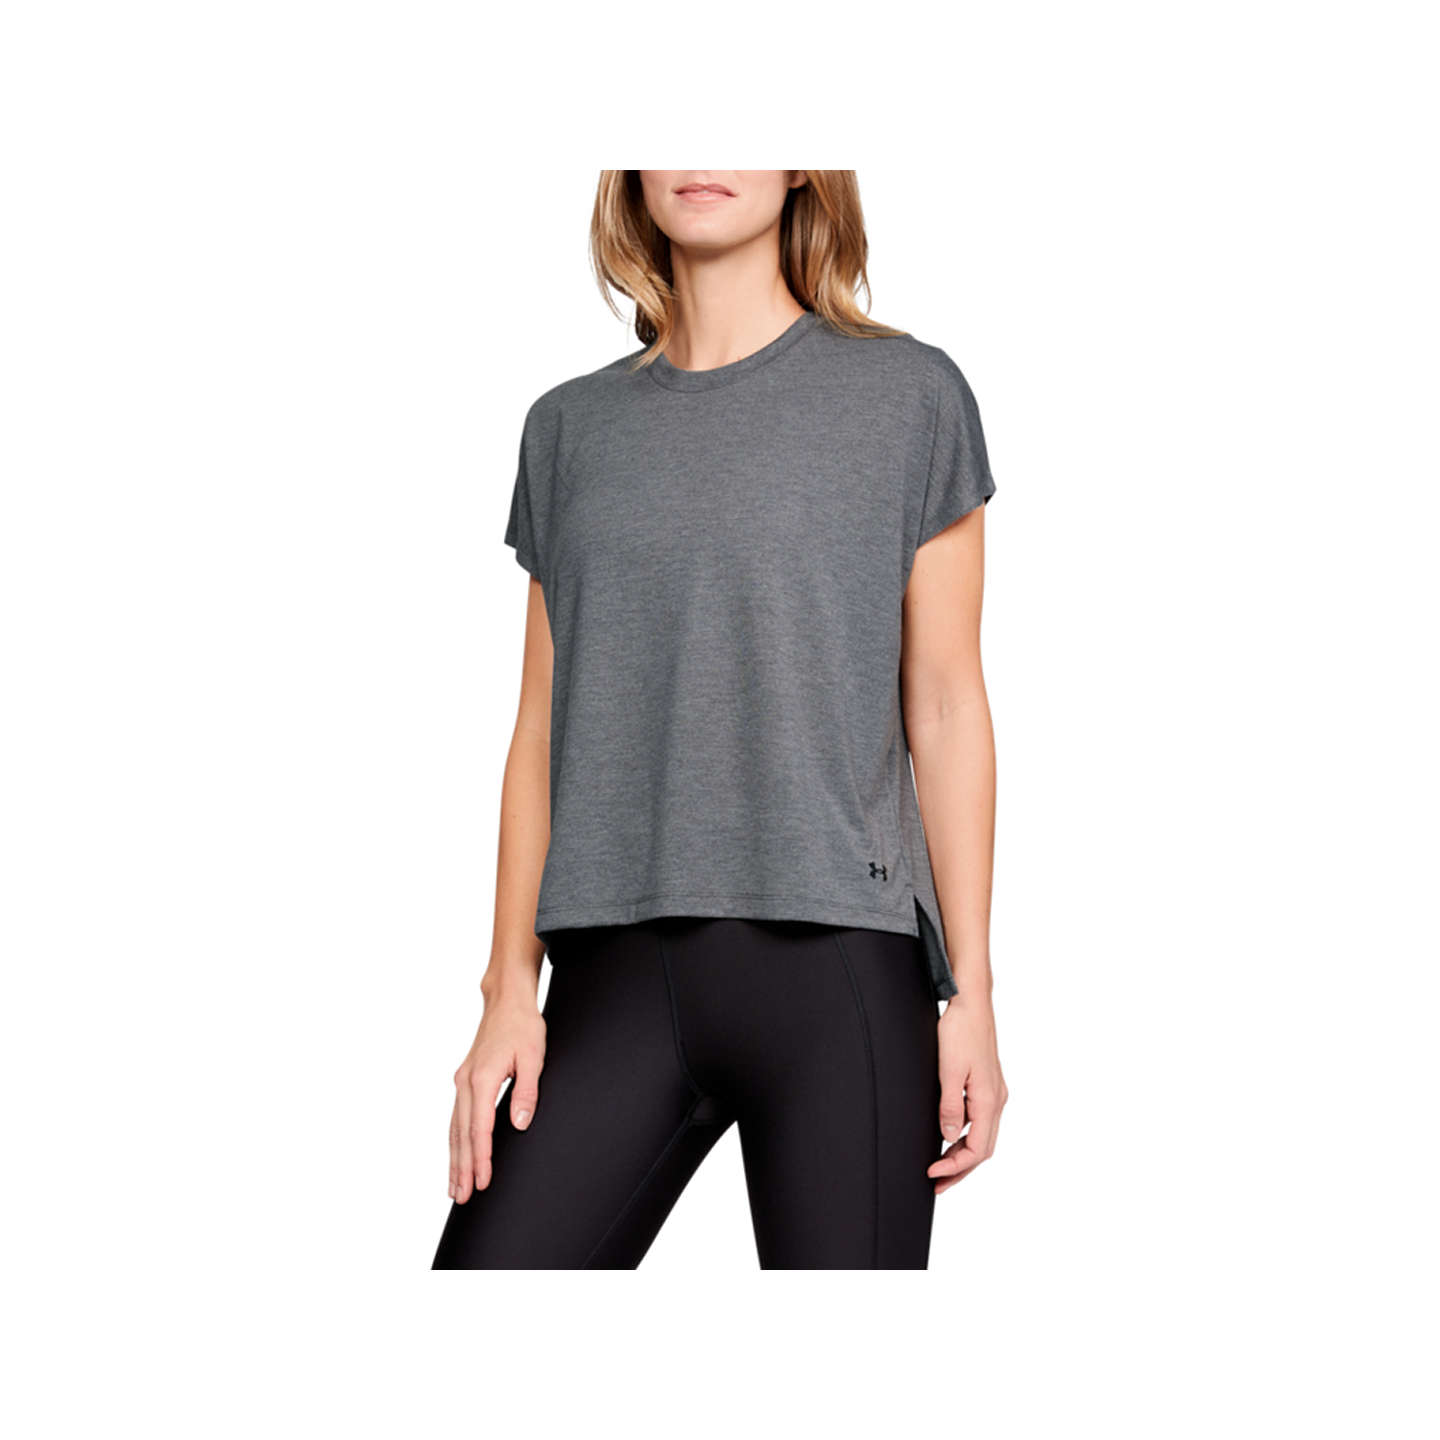 Under Armour Essentials Training T Shirt, Charcoal by Under Armour